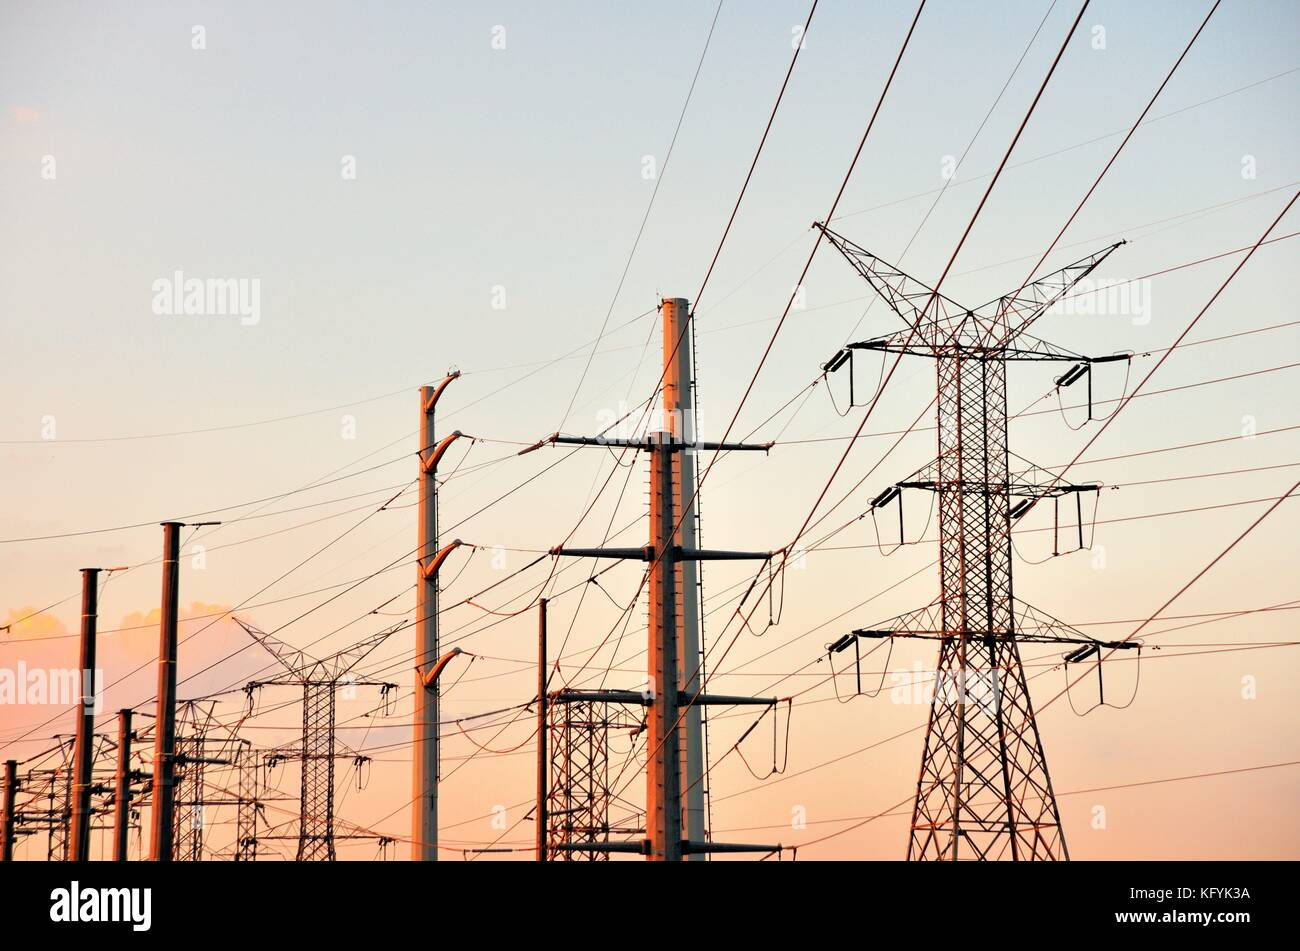 Power lines above a power substation in Elgin, Illinois. The power lines serve residential and commercial customers. - Stock Image